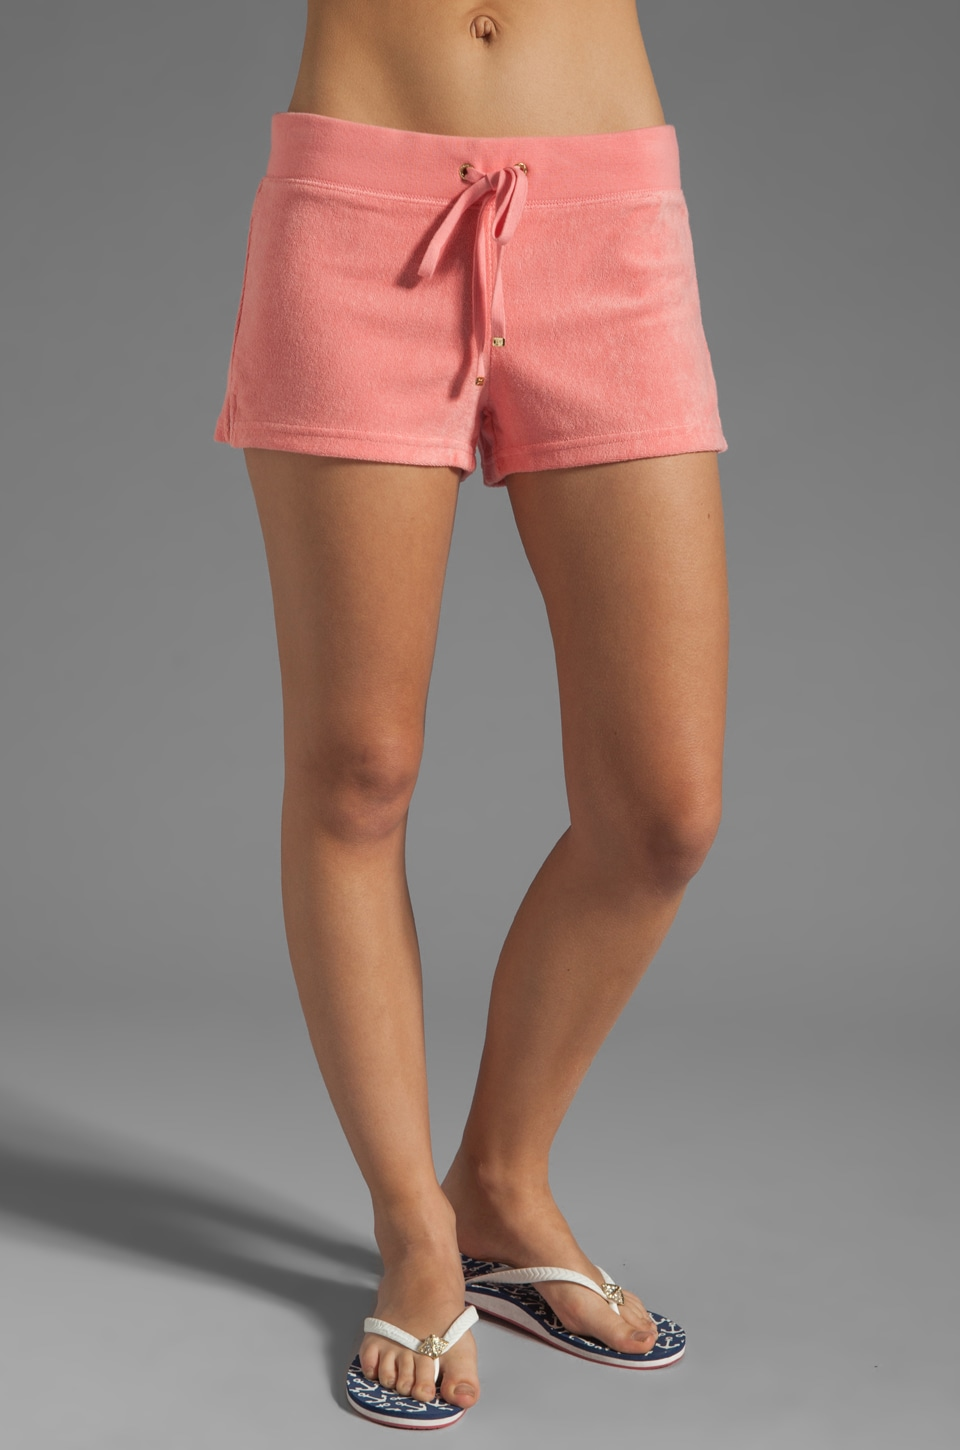 Juicy Couture Terry Public Short in Bubblegum